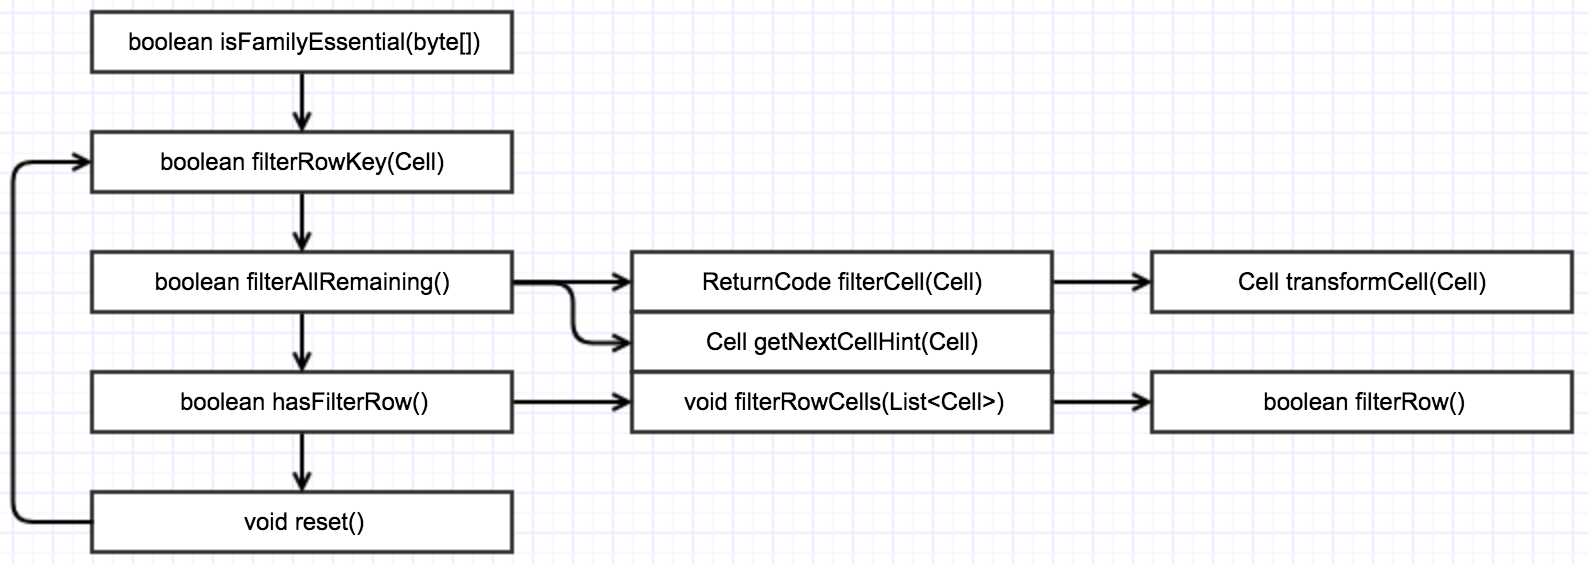 Filter call sequence